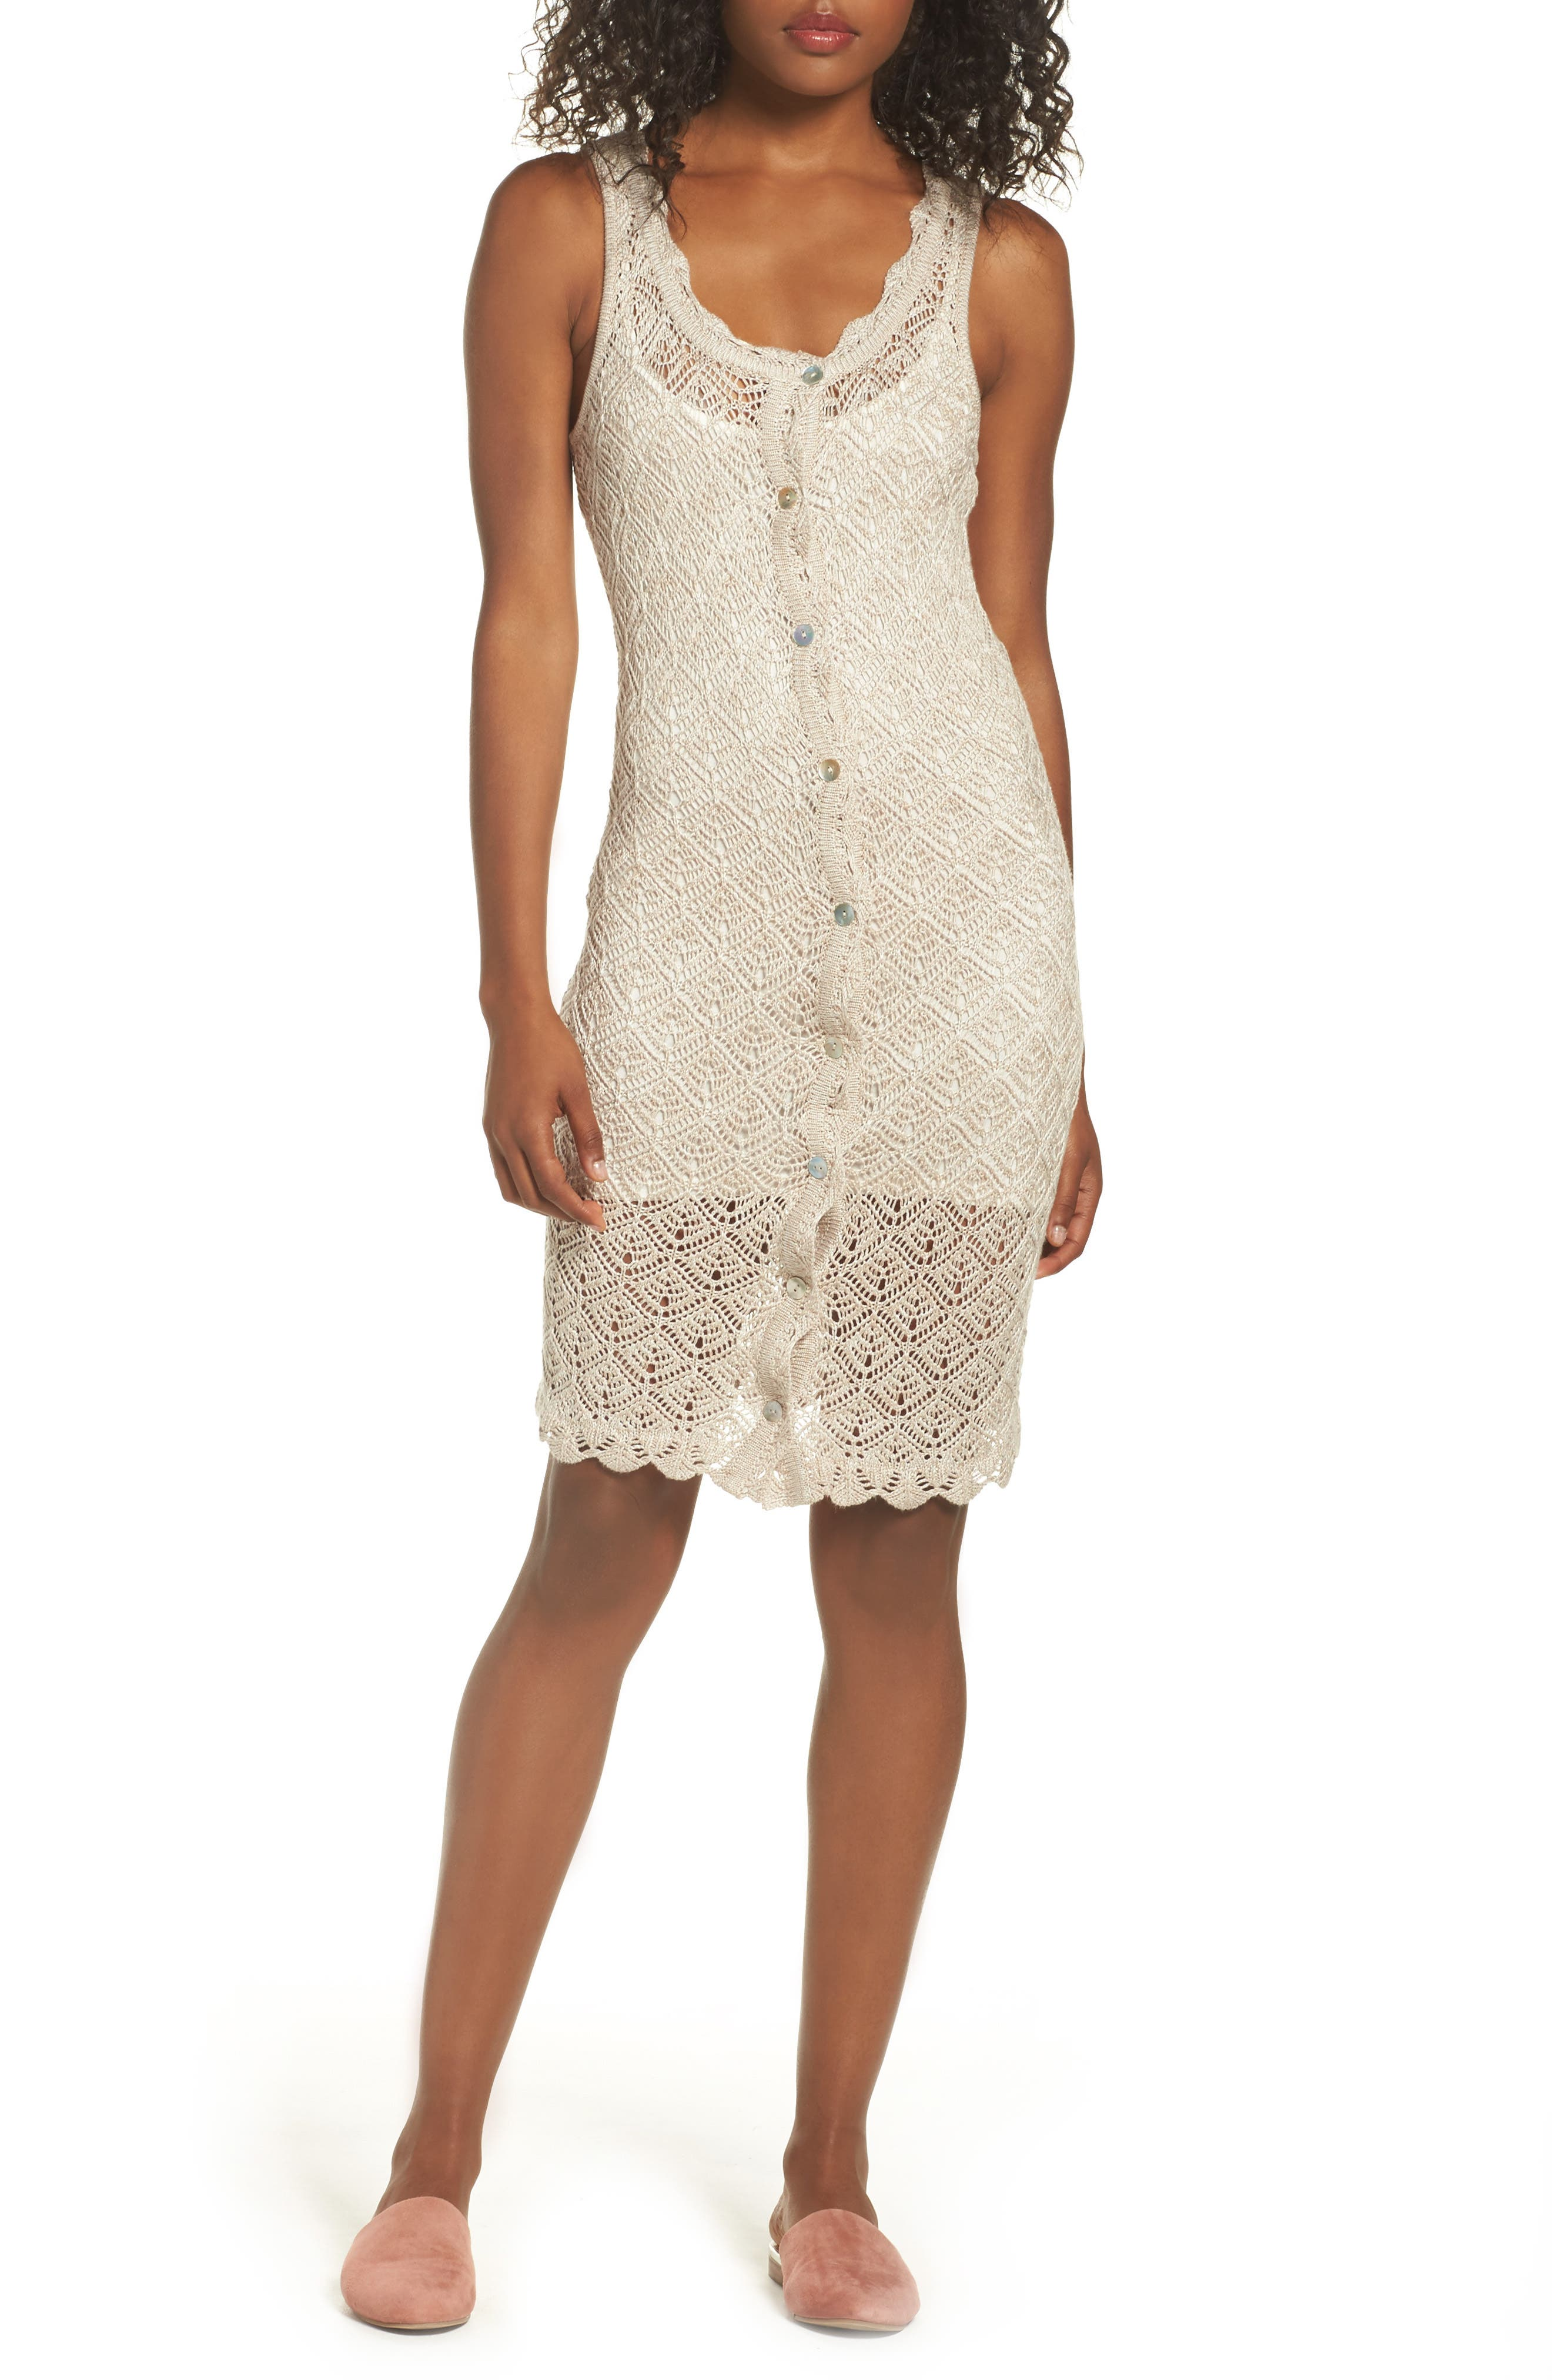 Picnic By The Lagoon Lace Dress,                         Main,                         color, 261